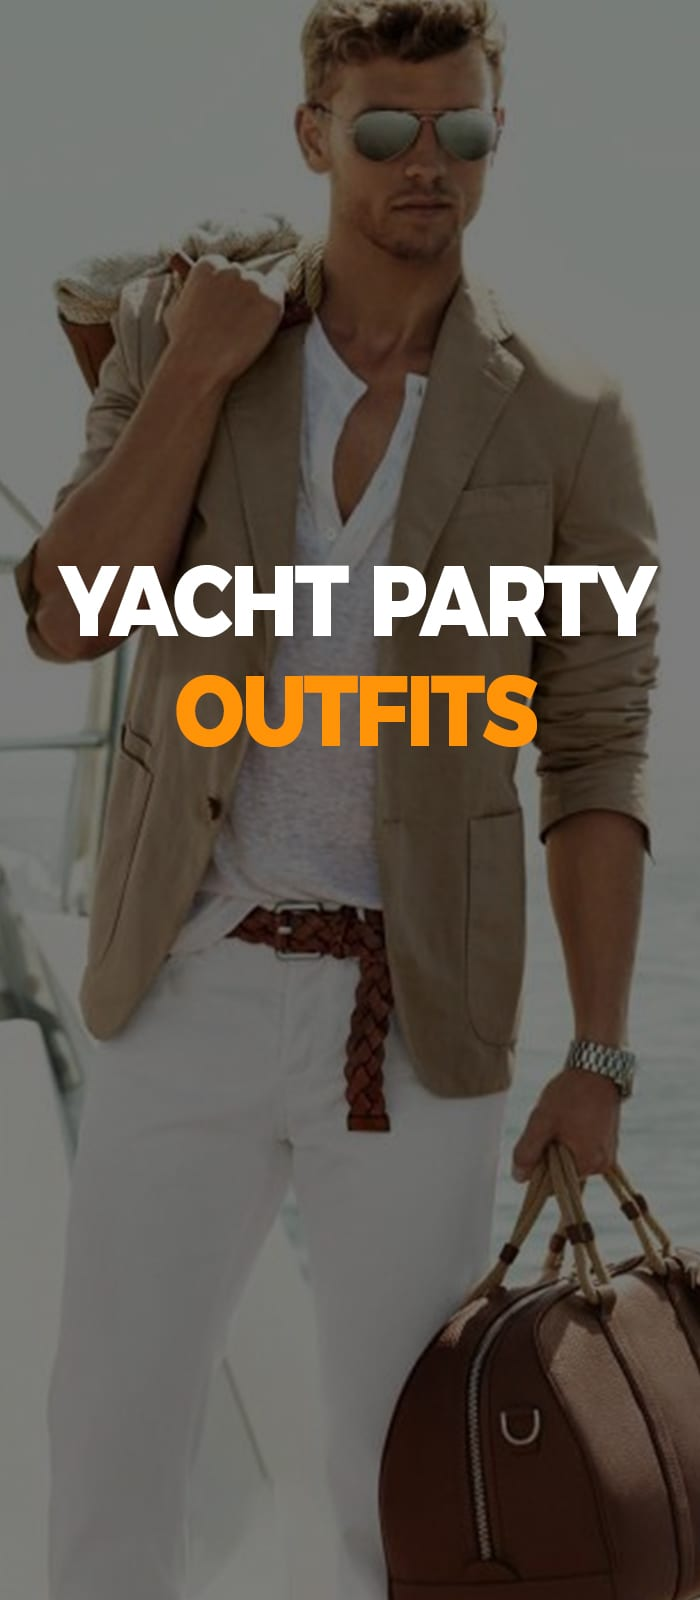 white shirt and pant with beige jacket look for yacht party